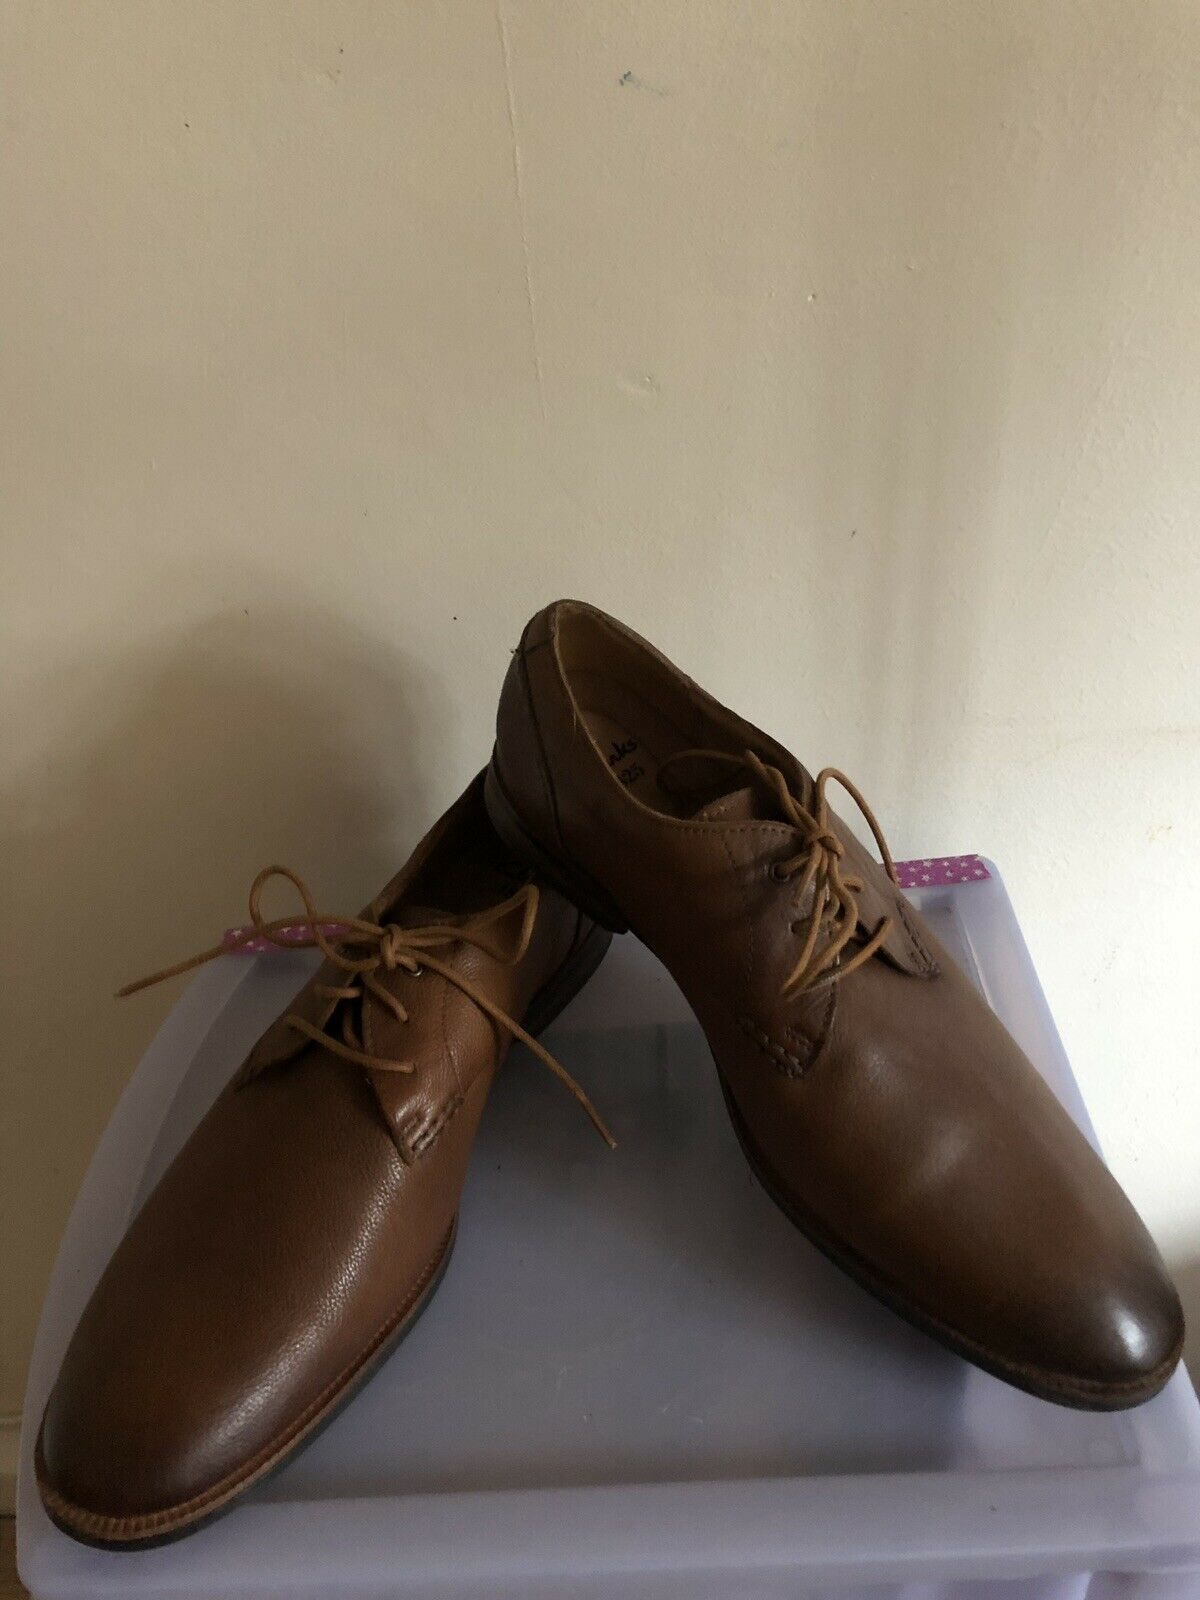 Mens Clarks 1825 Brown Leather Cushion Plus shoes Size Uk 12 G